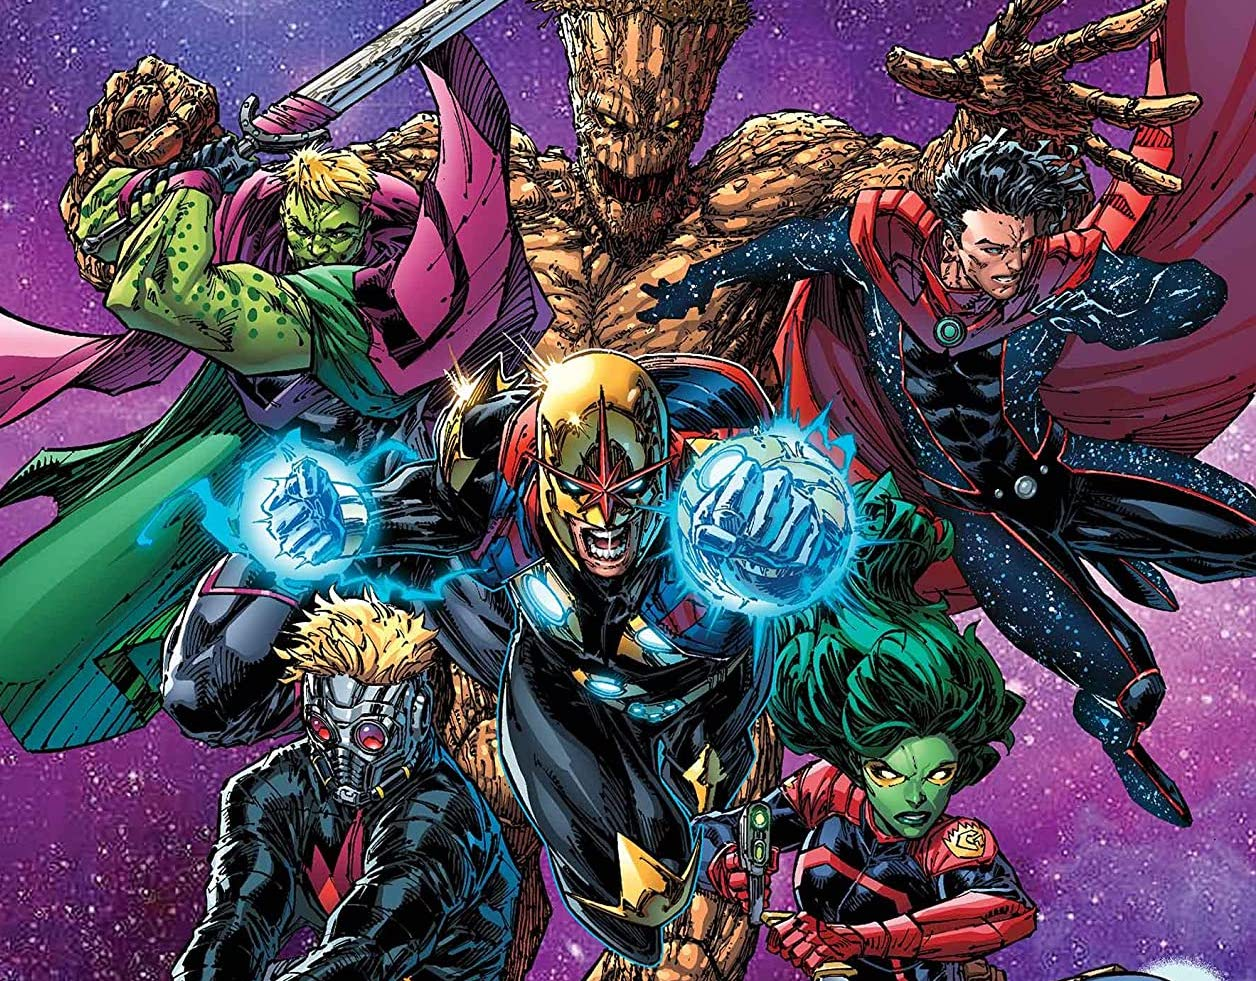 'Guardians of the Galaxy' #13 is the thrilling start of a new Marvel Cosmic era